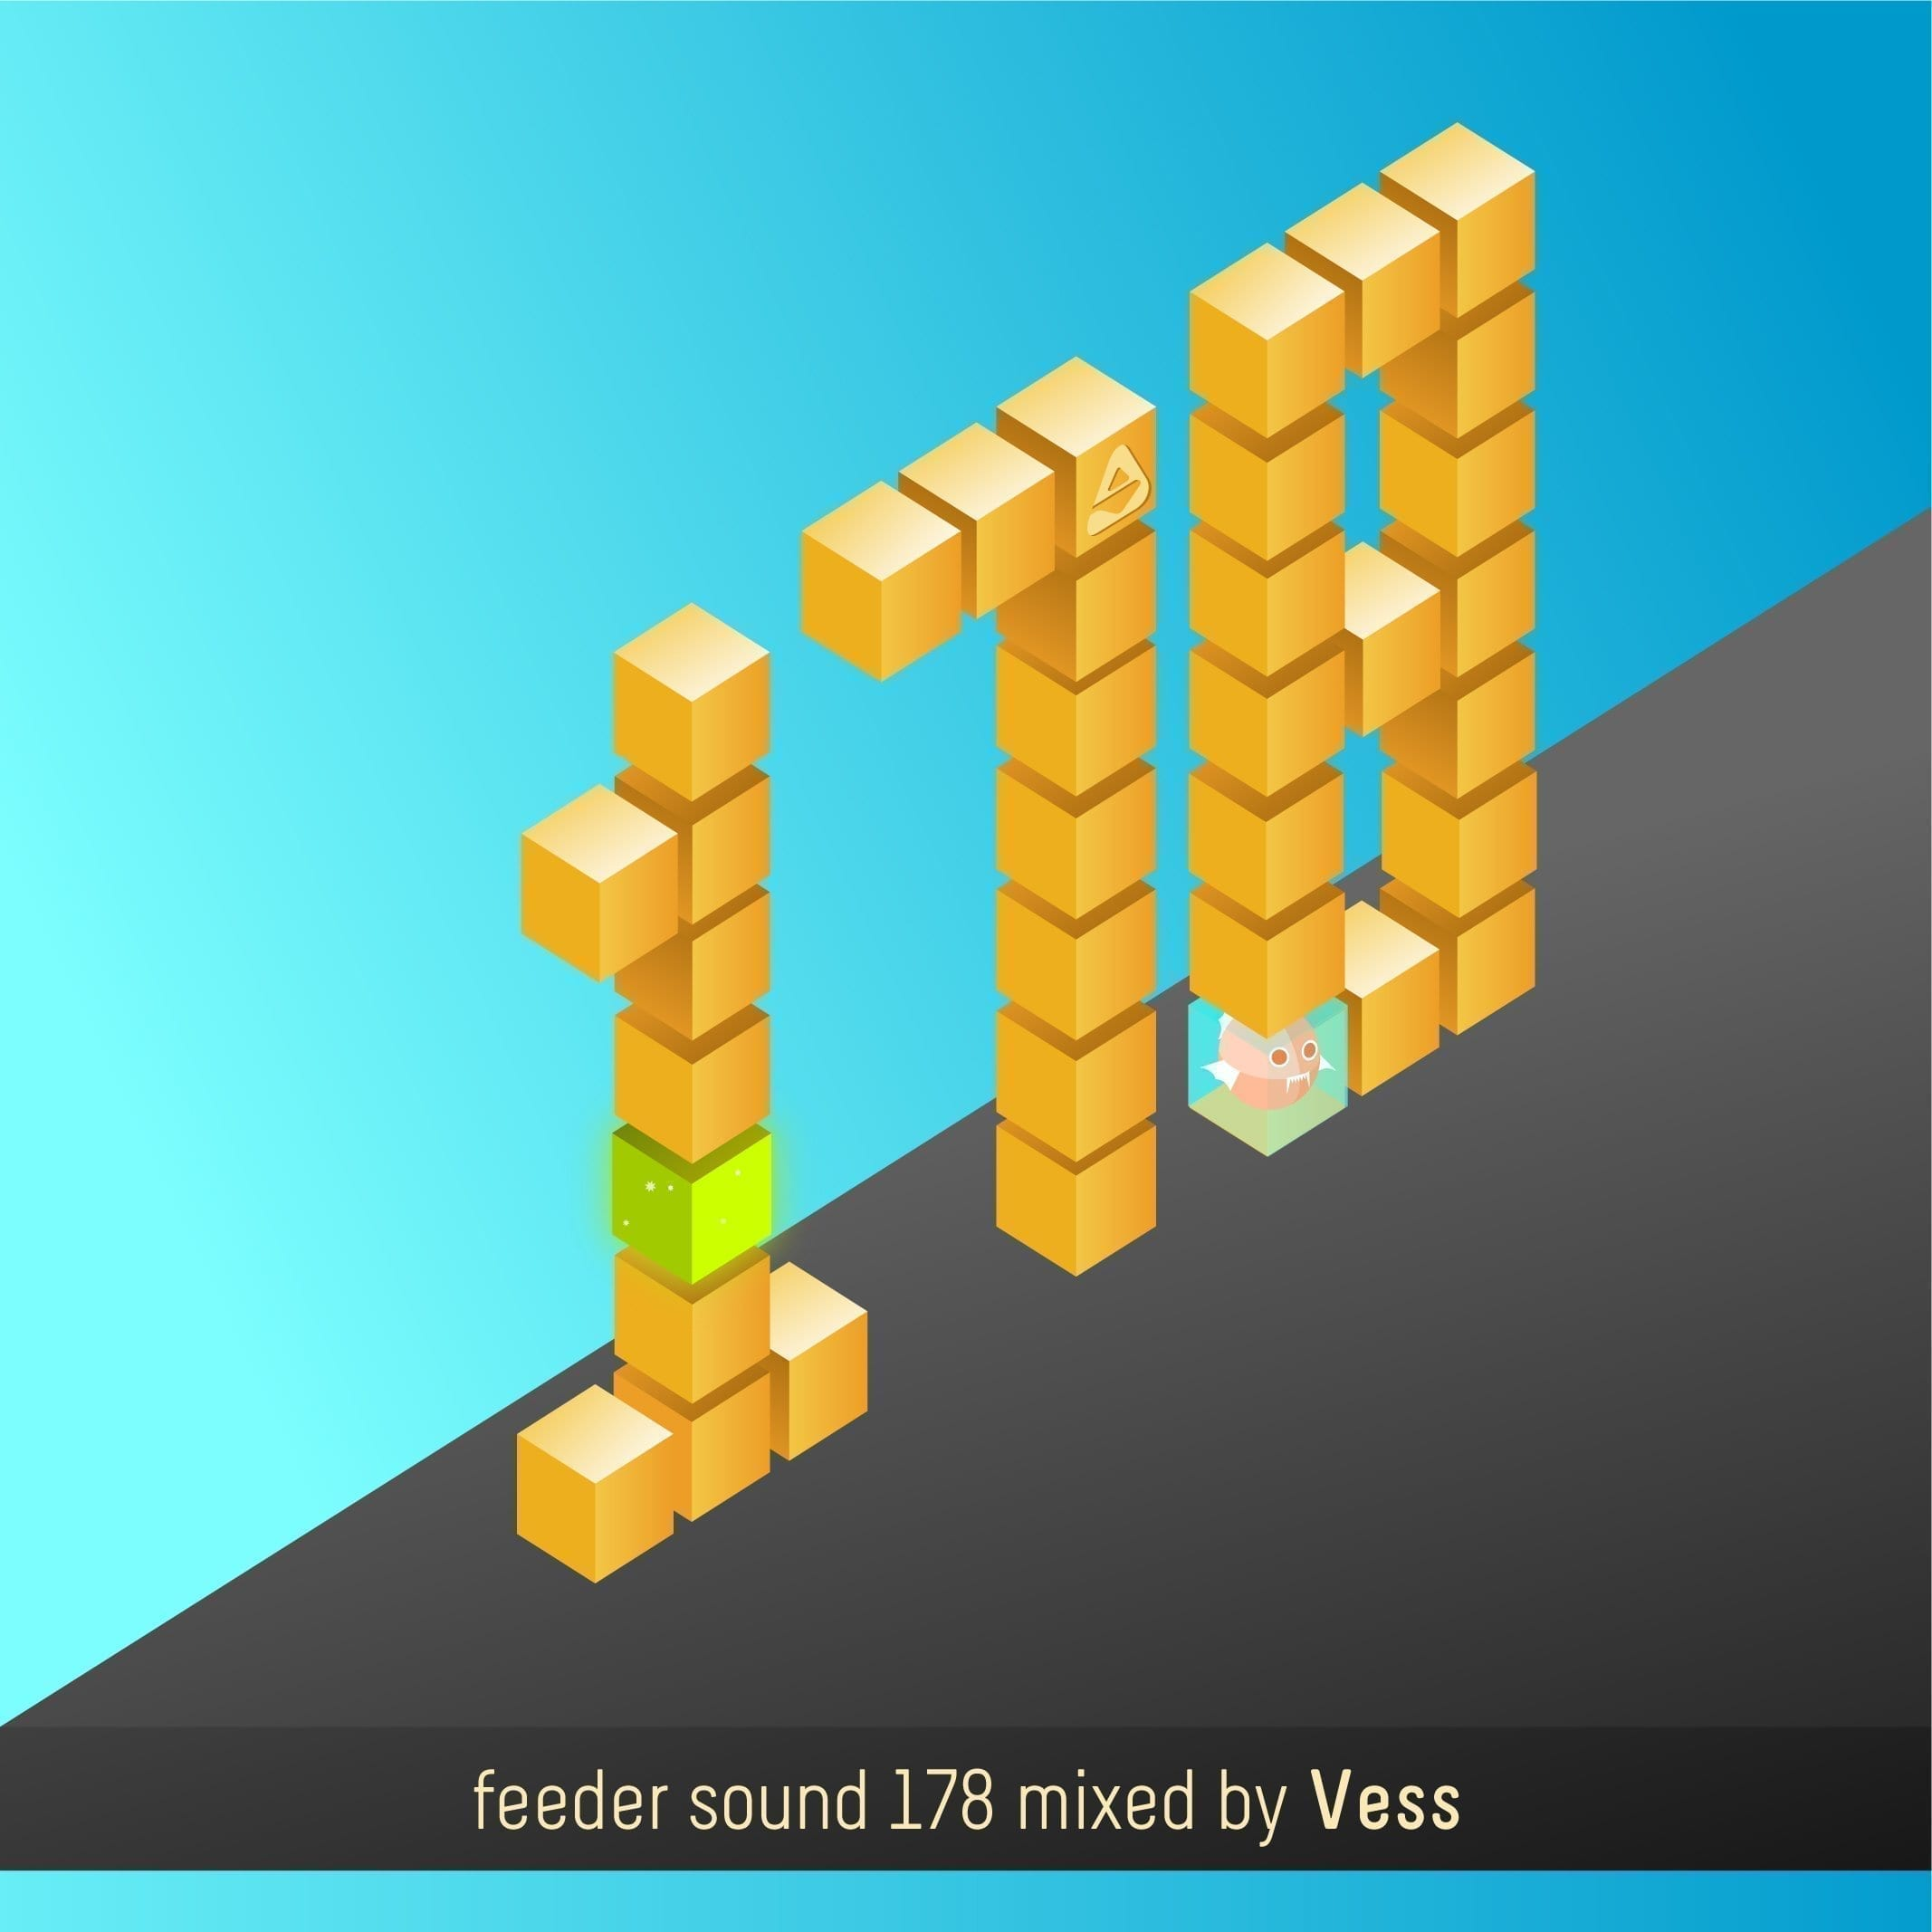 feeder sound 178 mixed by Vess